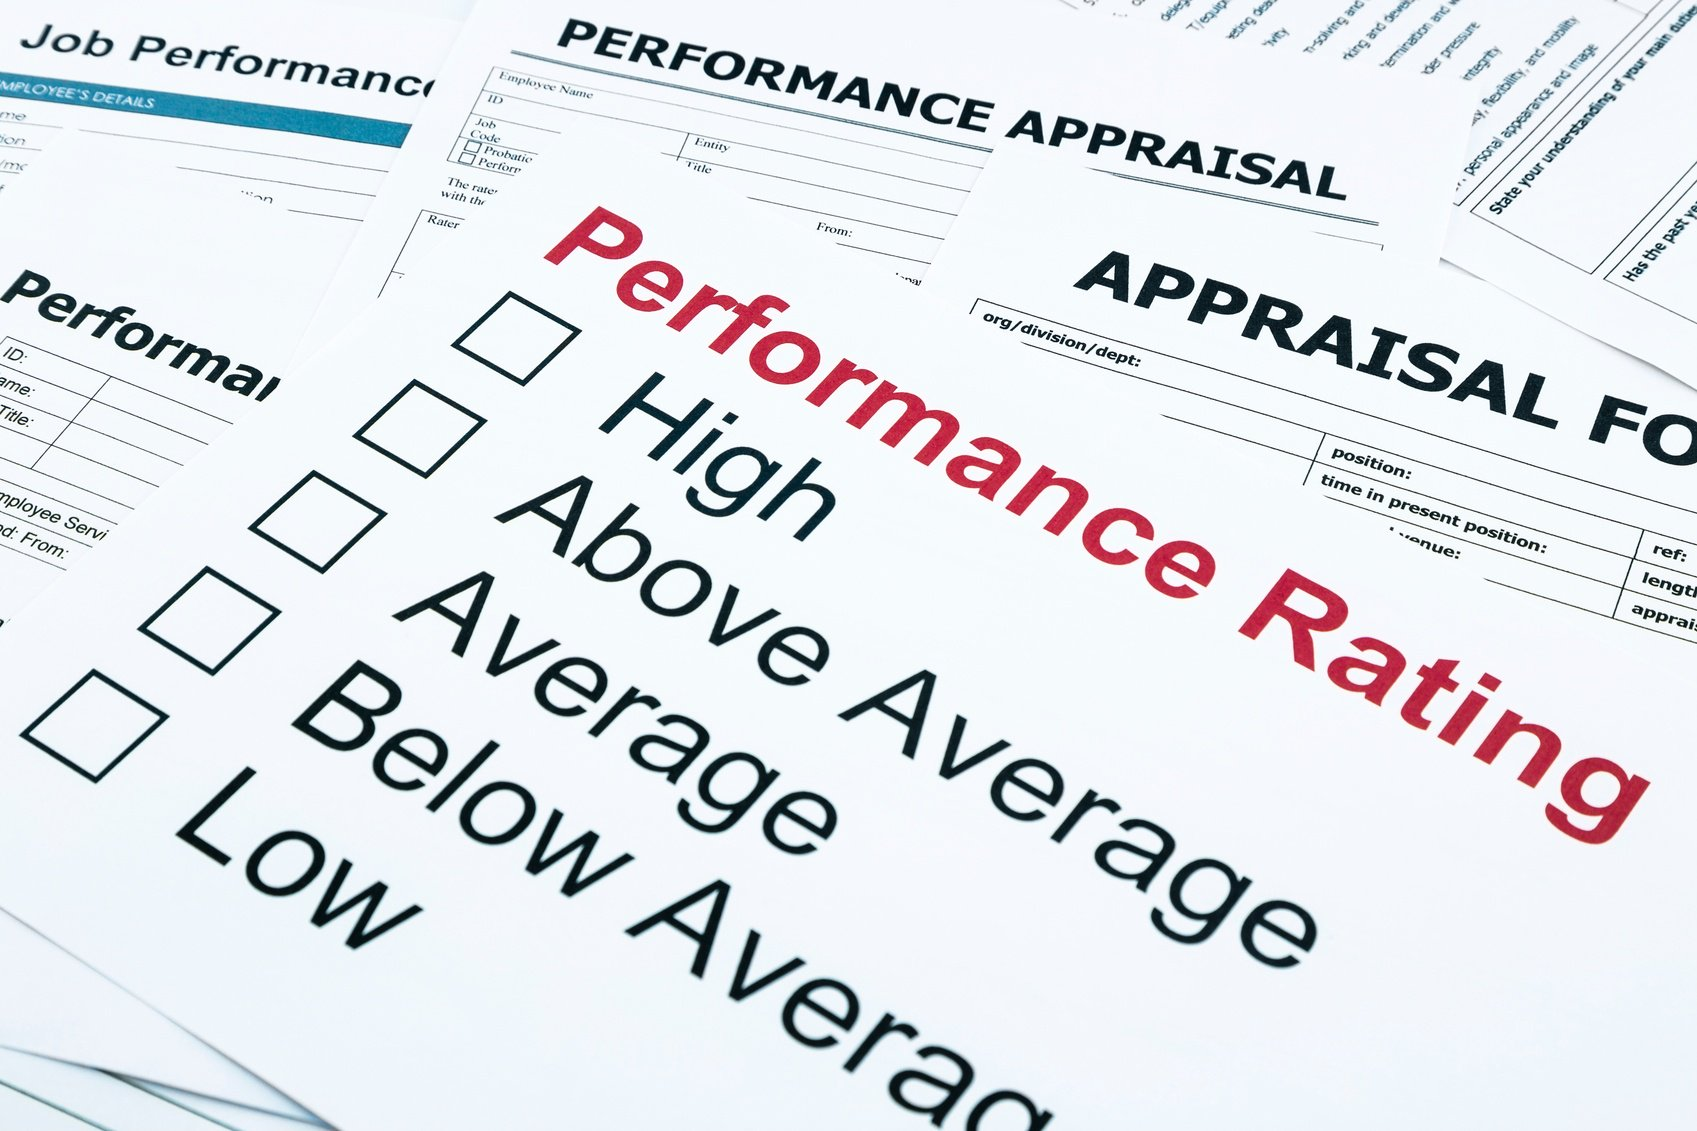 Performance rating